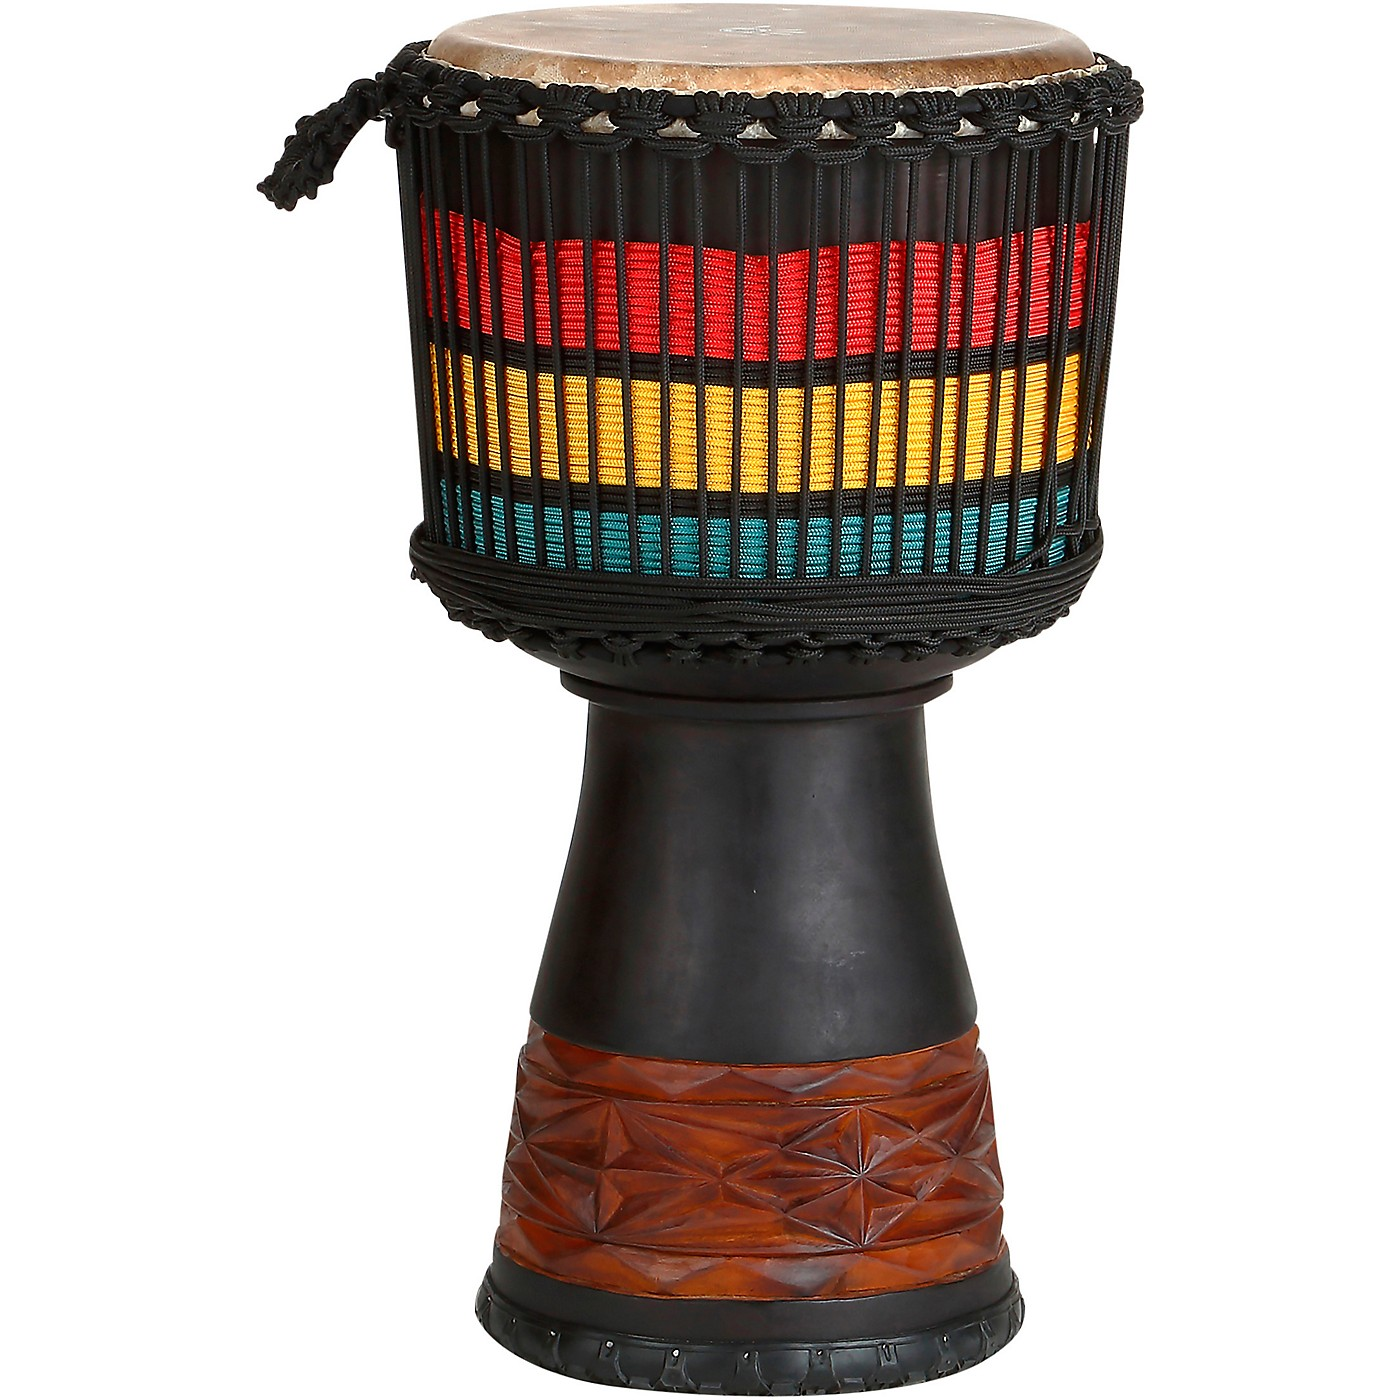 X8 Drums One Love Master Series Djembe thumbnail